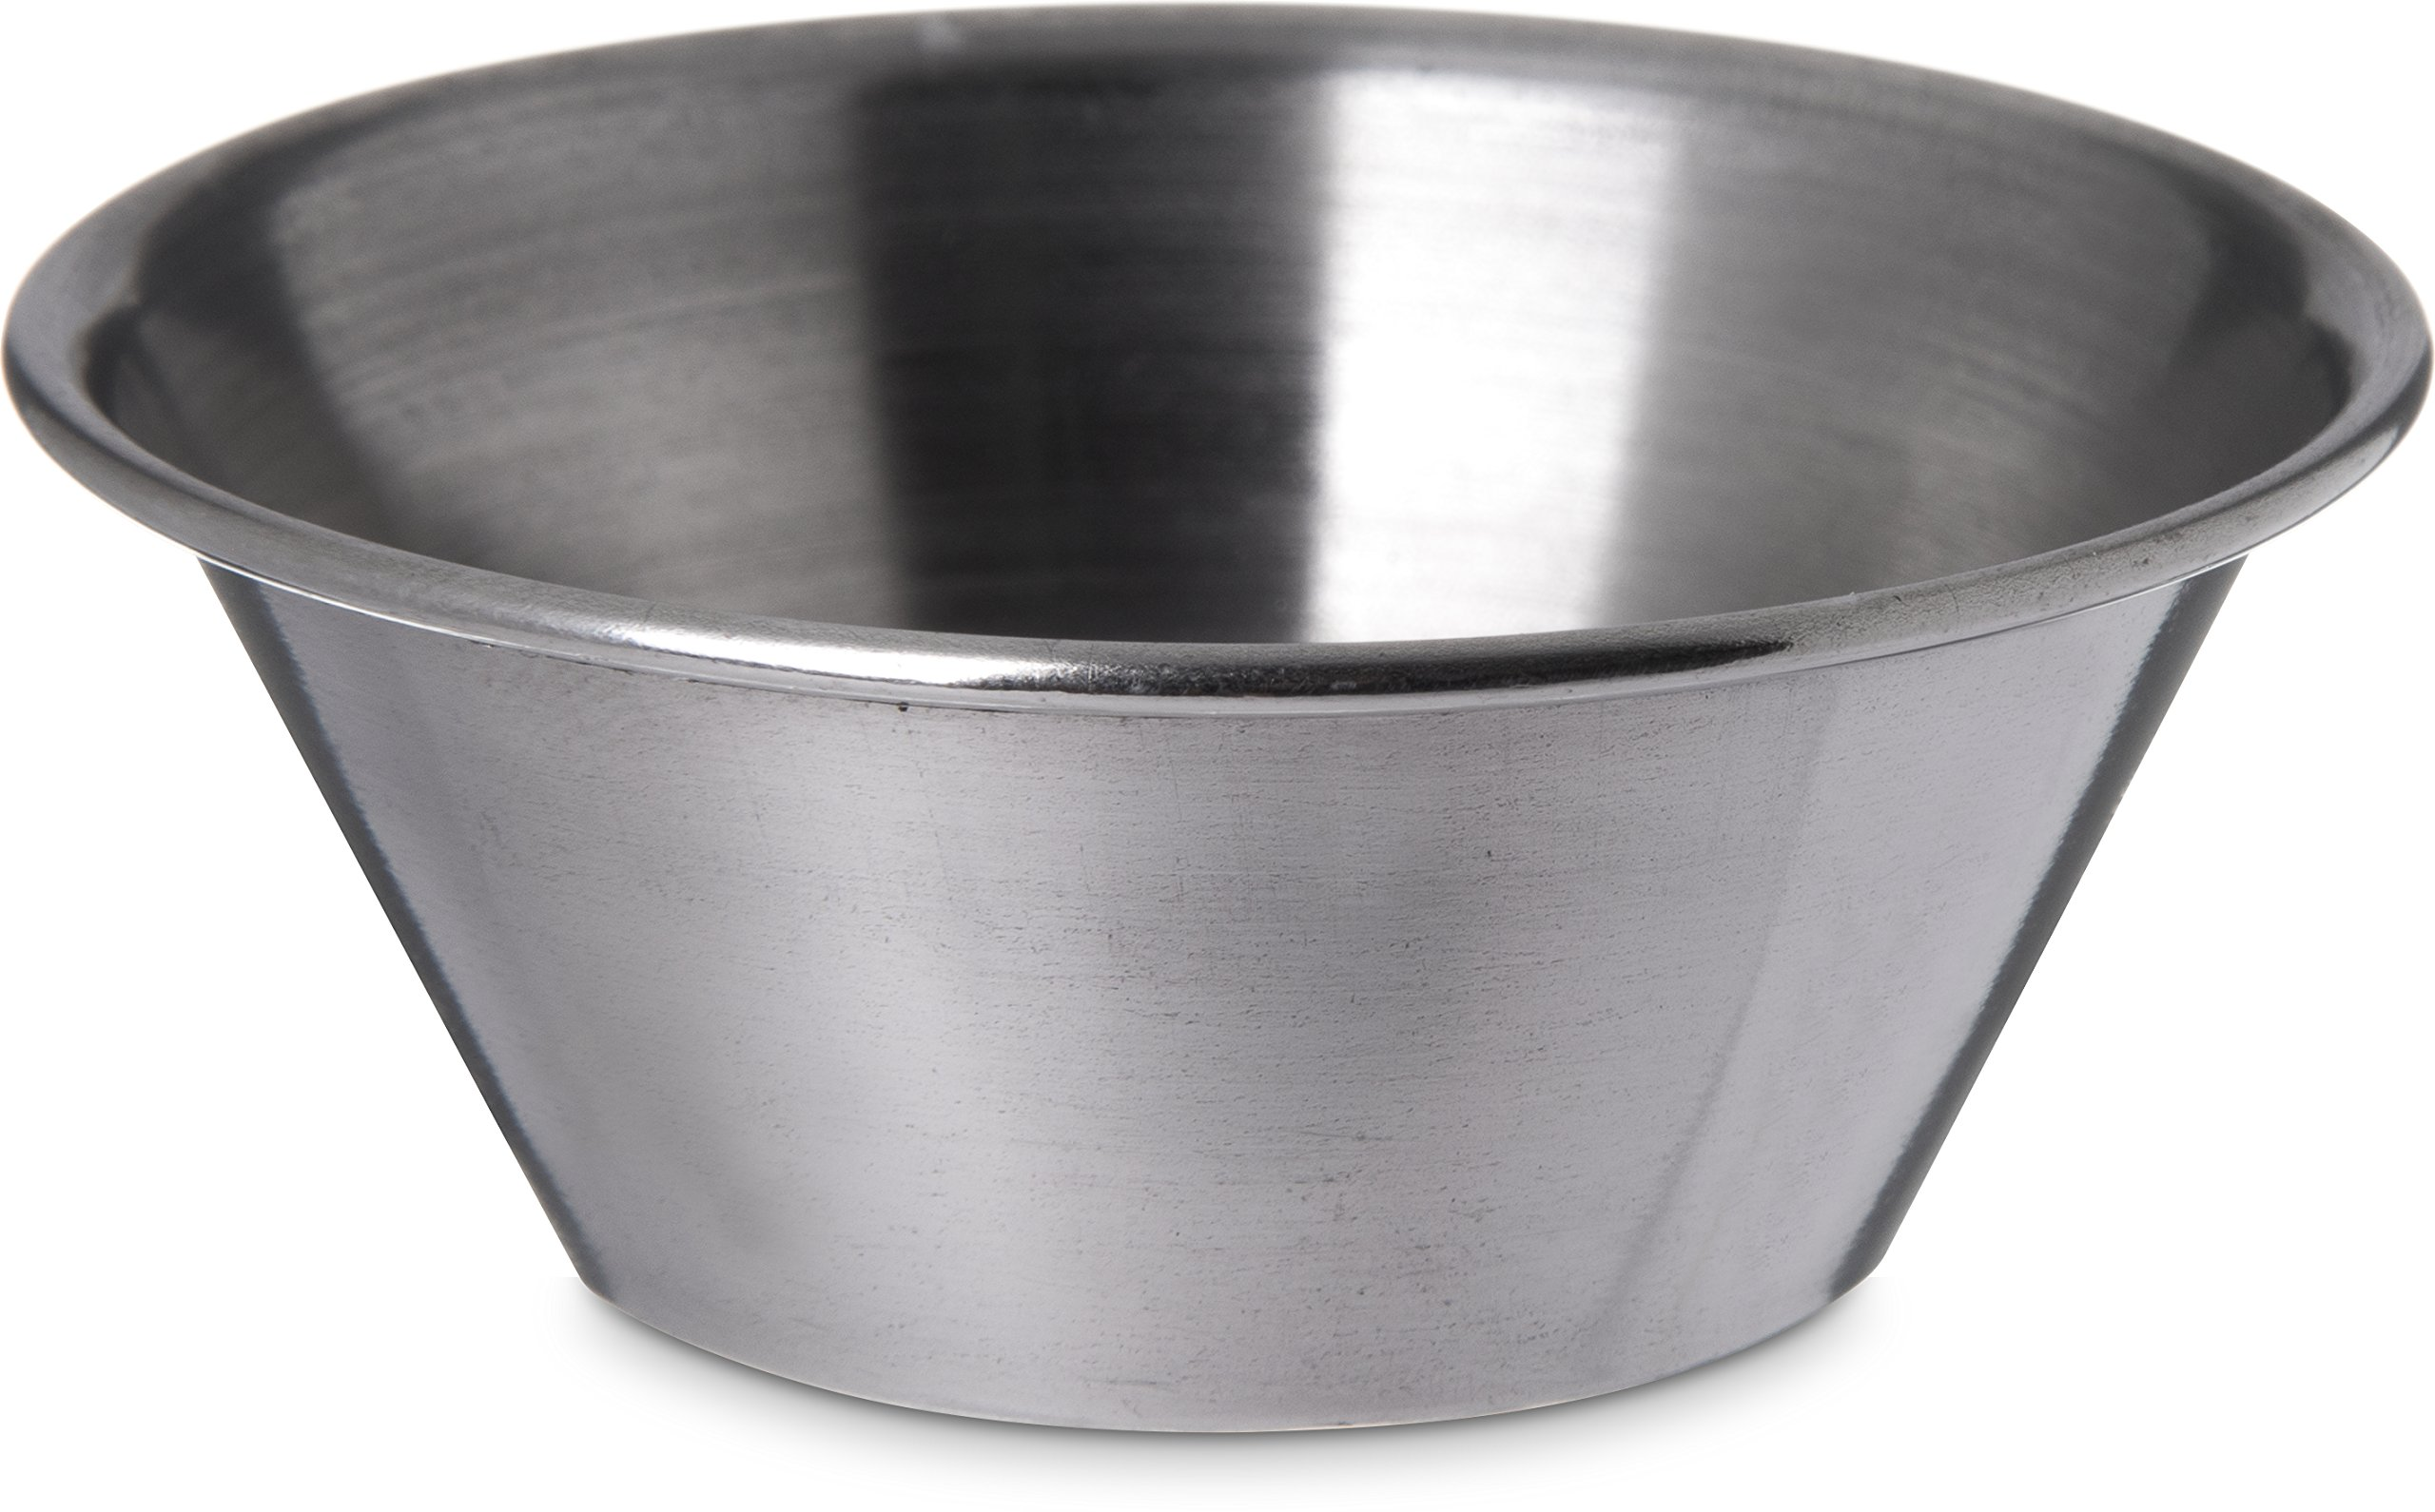 Carlisle 602400 Stainless Steel Ramekin / Sauce Cup, 1.5 oz (Case of 144) by Carlisle